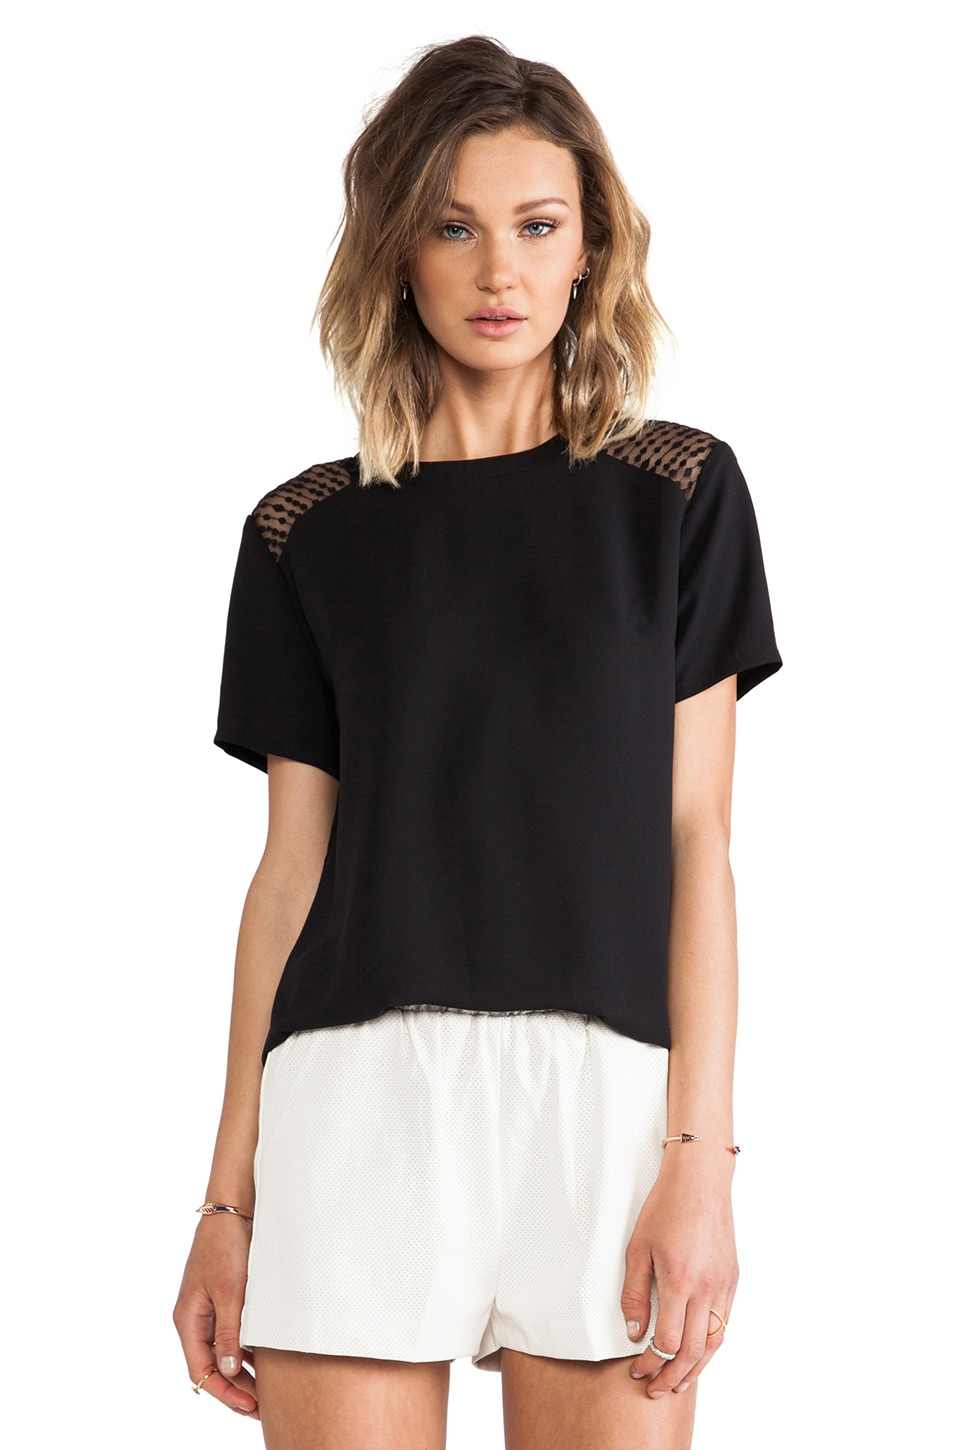 MM Couture by Miss Me Short Sleeve Shirt in Black